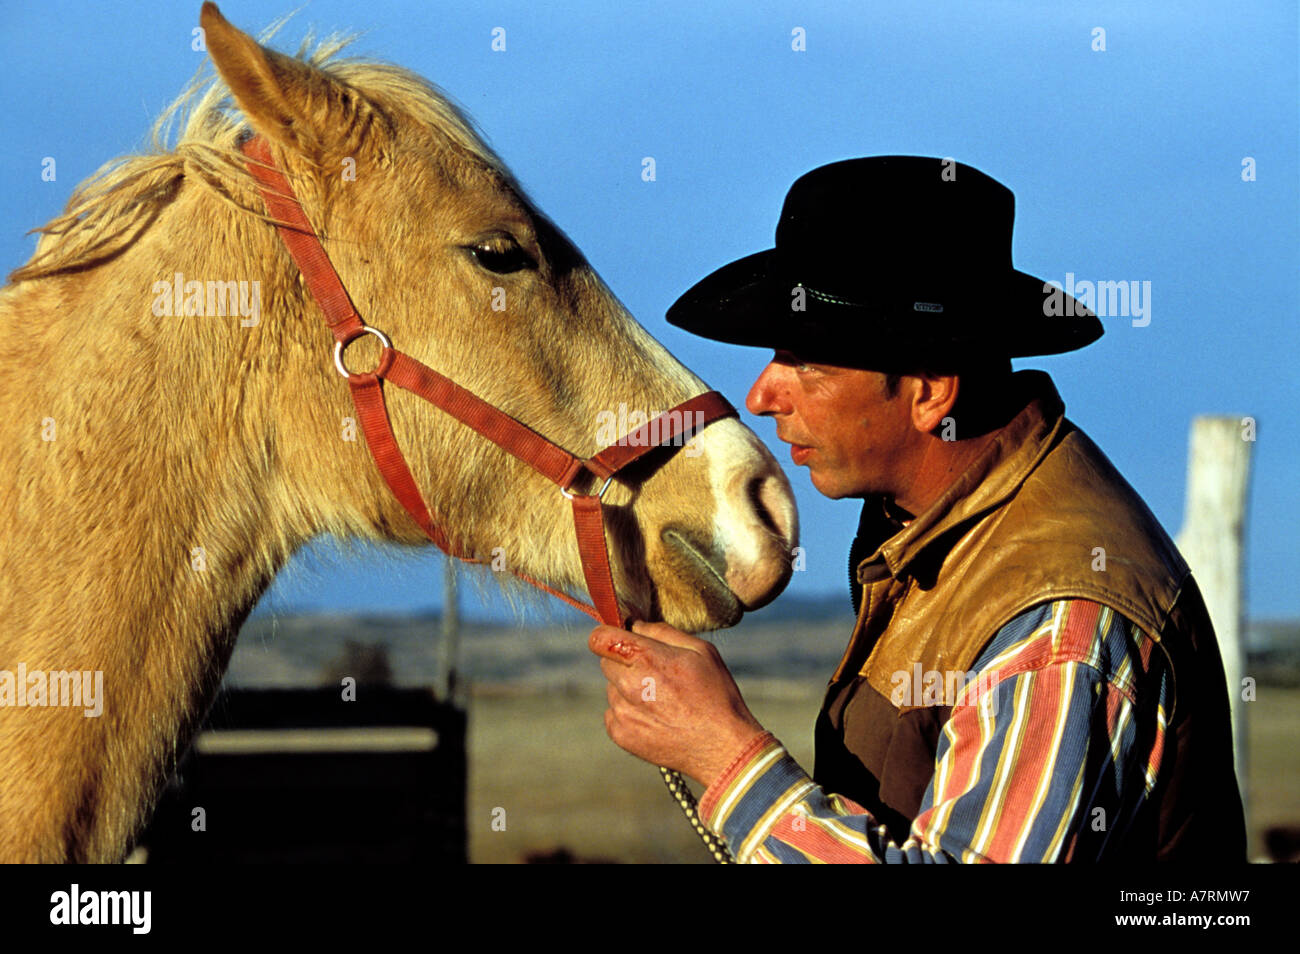 randals ranch stock photos randals ranch stock images alamy